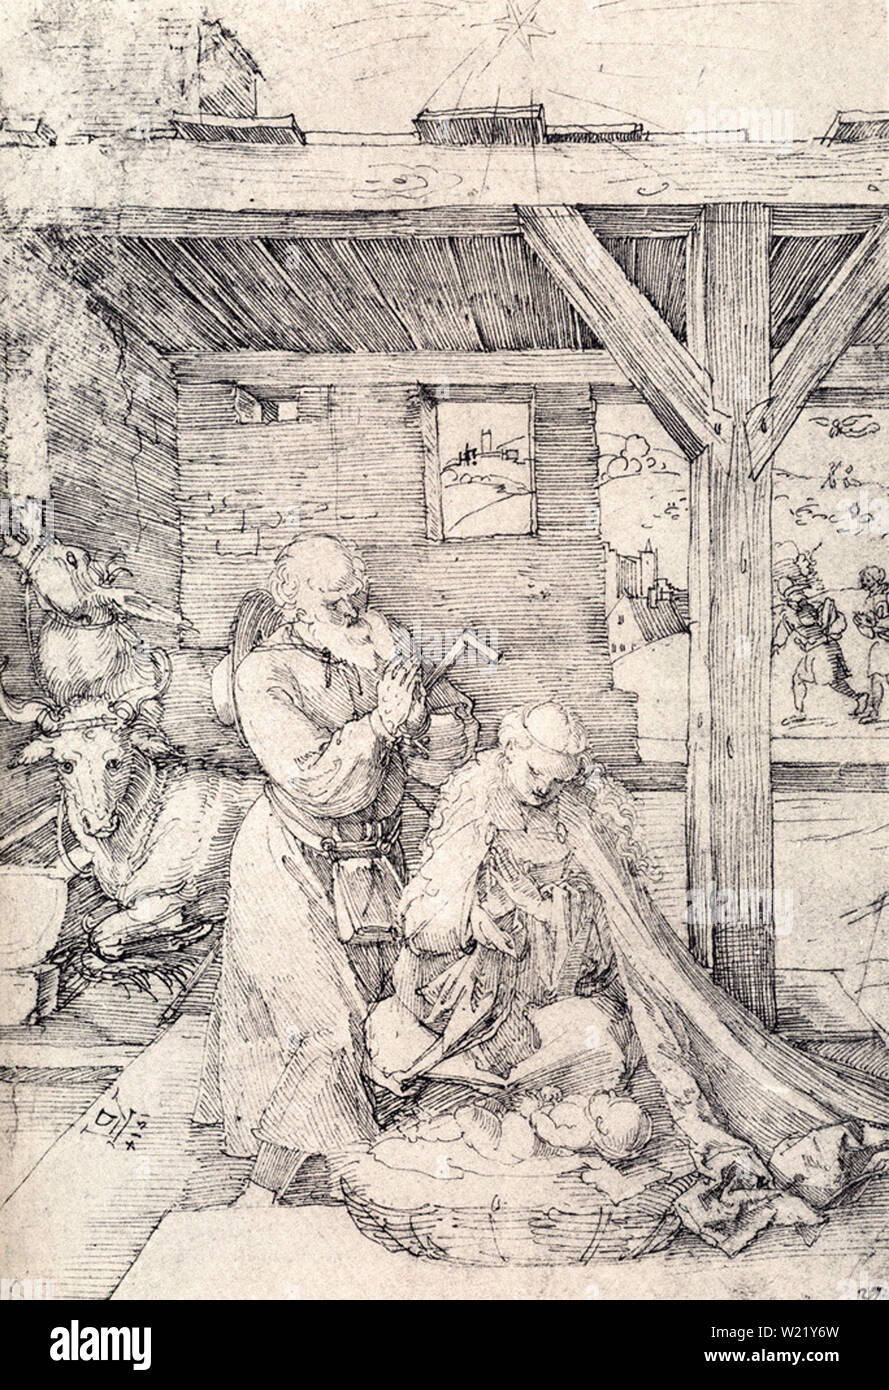 Albrecht Dürer - Nativity Adoration Christ Child Stables Virgin Saint Joseph 1514 - Stock Image